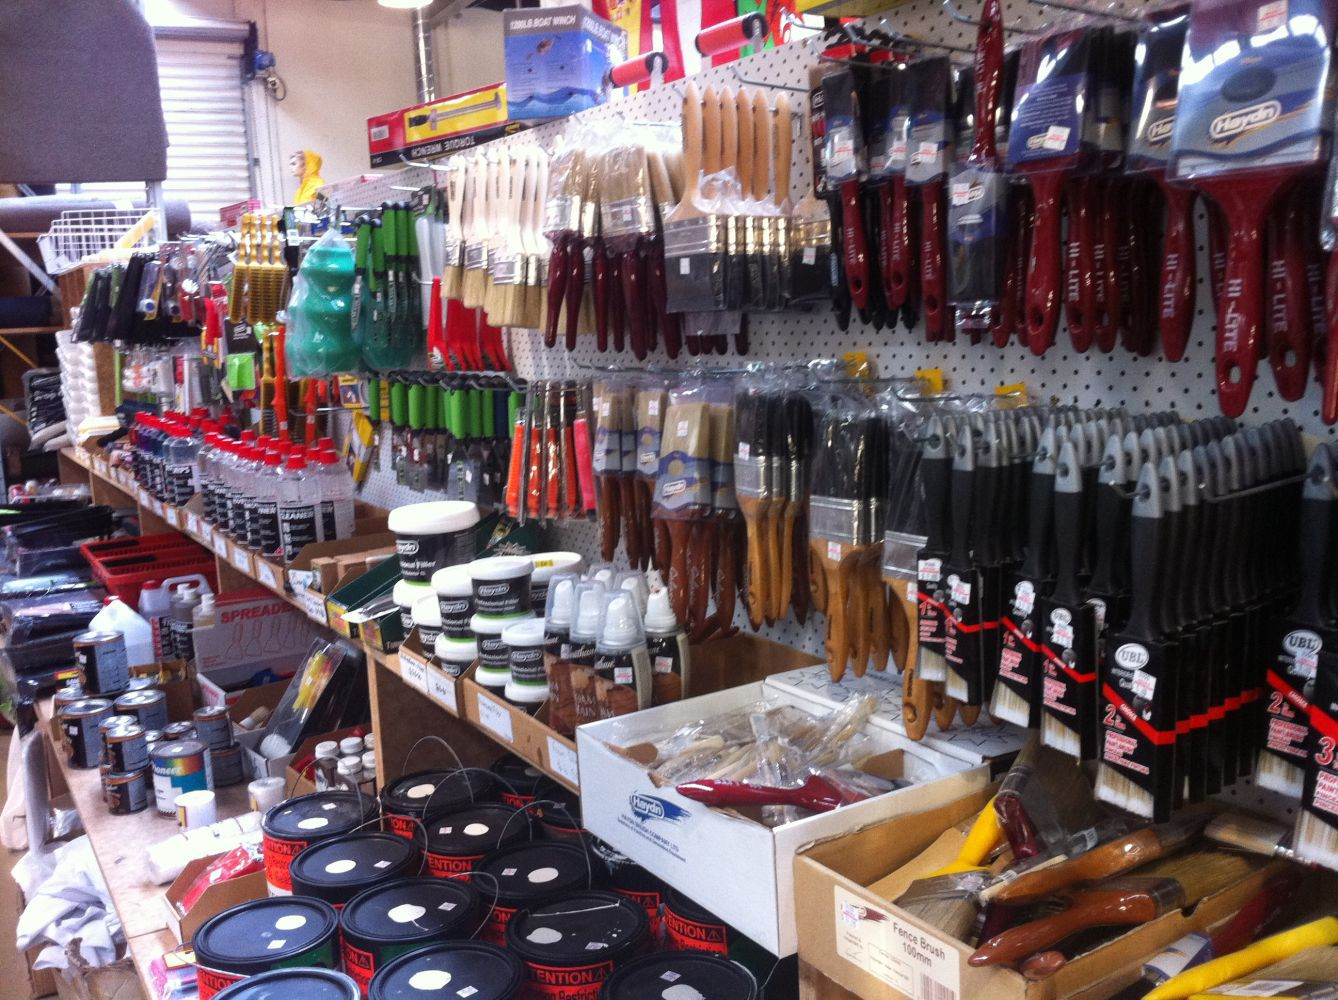 fishing accessories, tools, hunting gear and more in Wellington